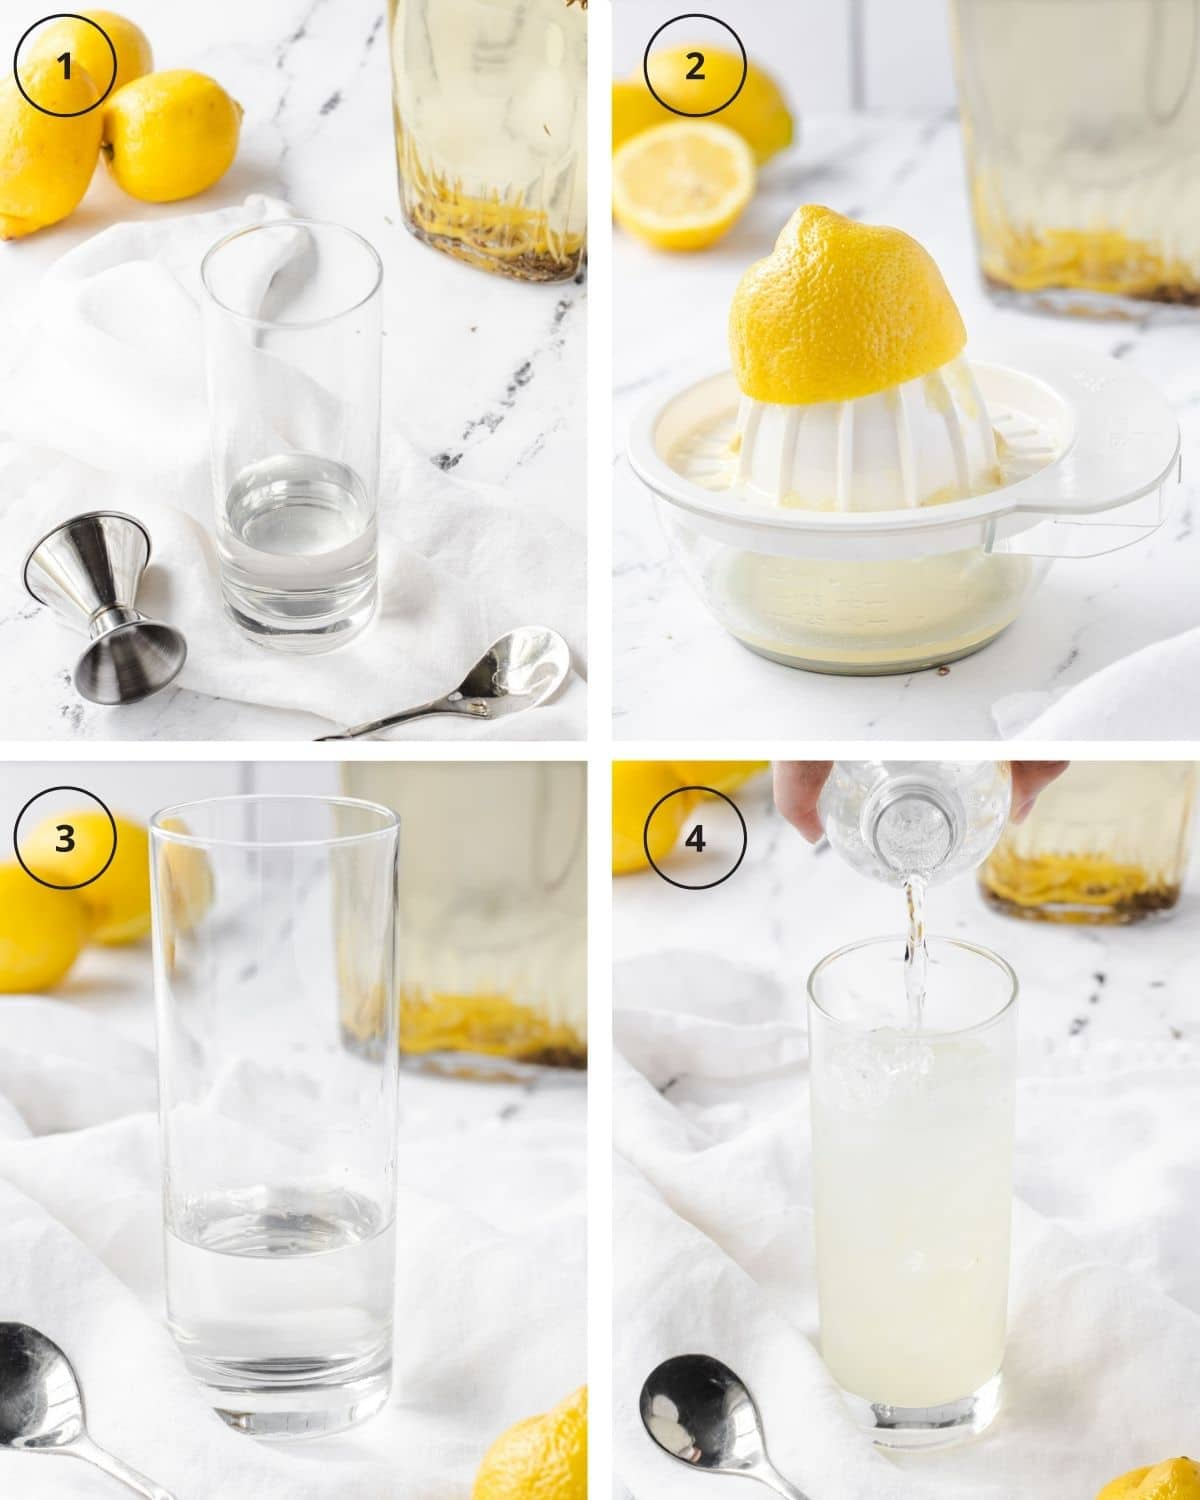 Step-by-step process of making a vodka collins.